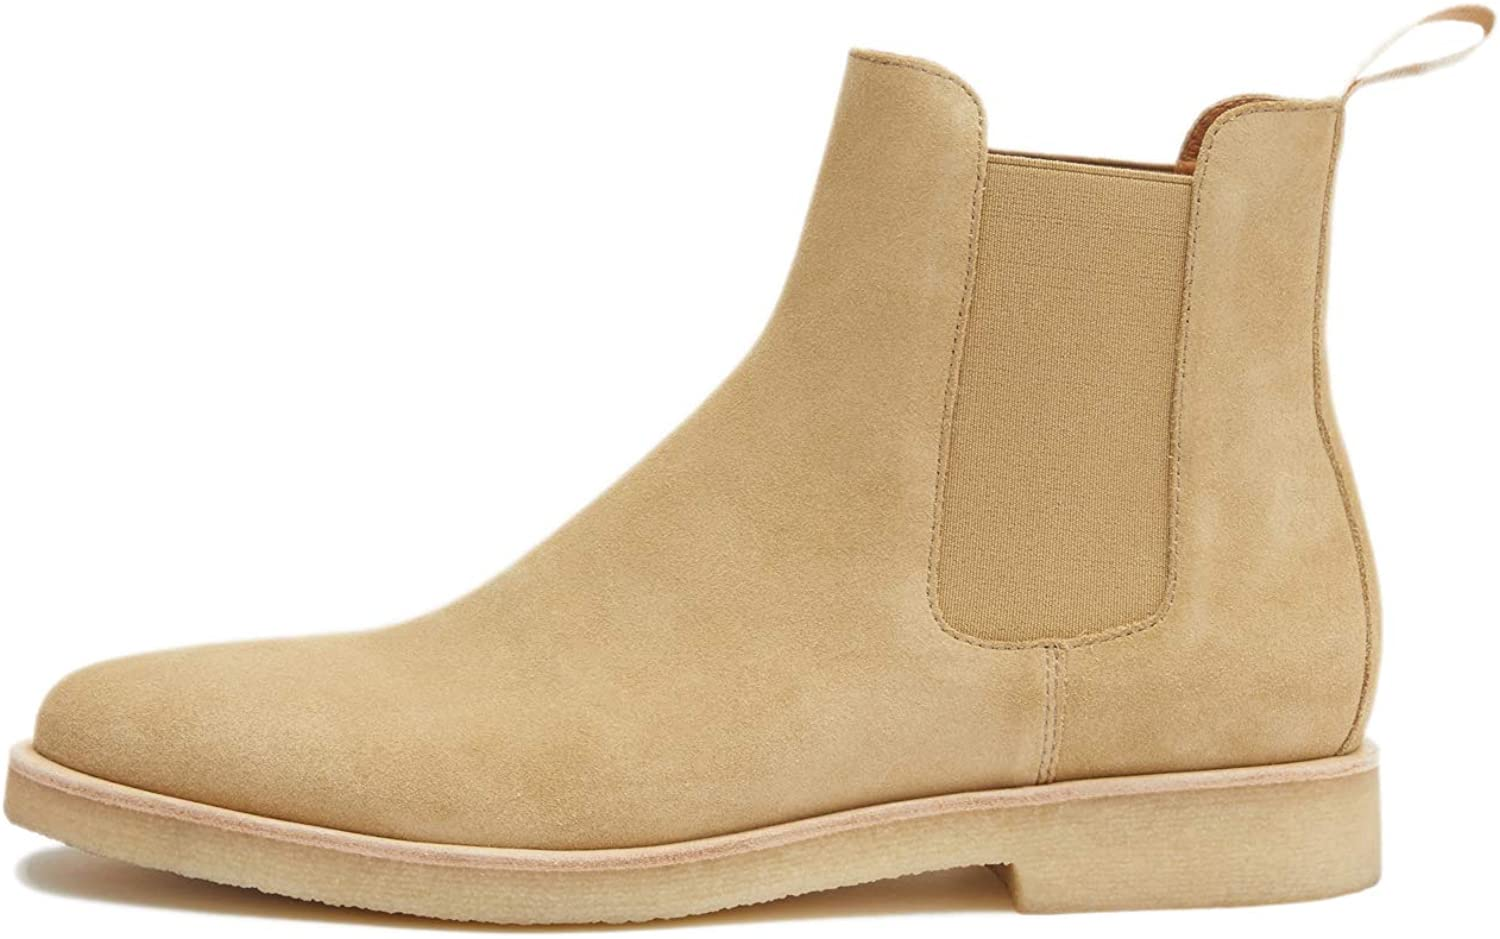 New Republic Sonoma Chelsea Boot with Crepe Sole